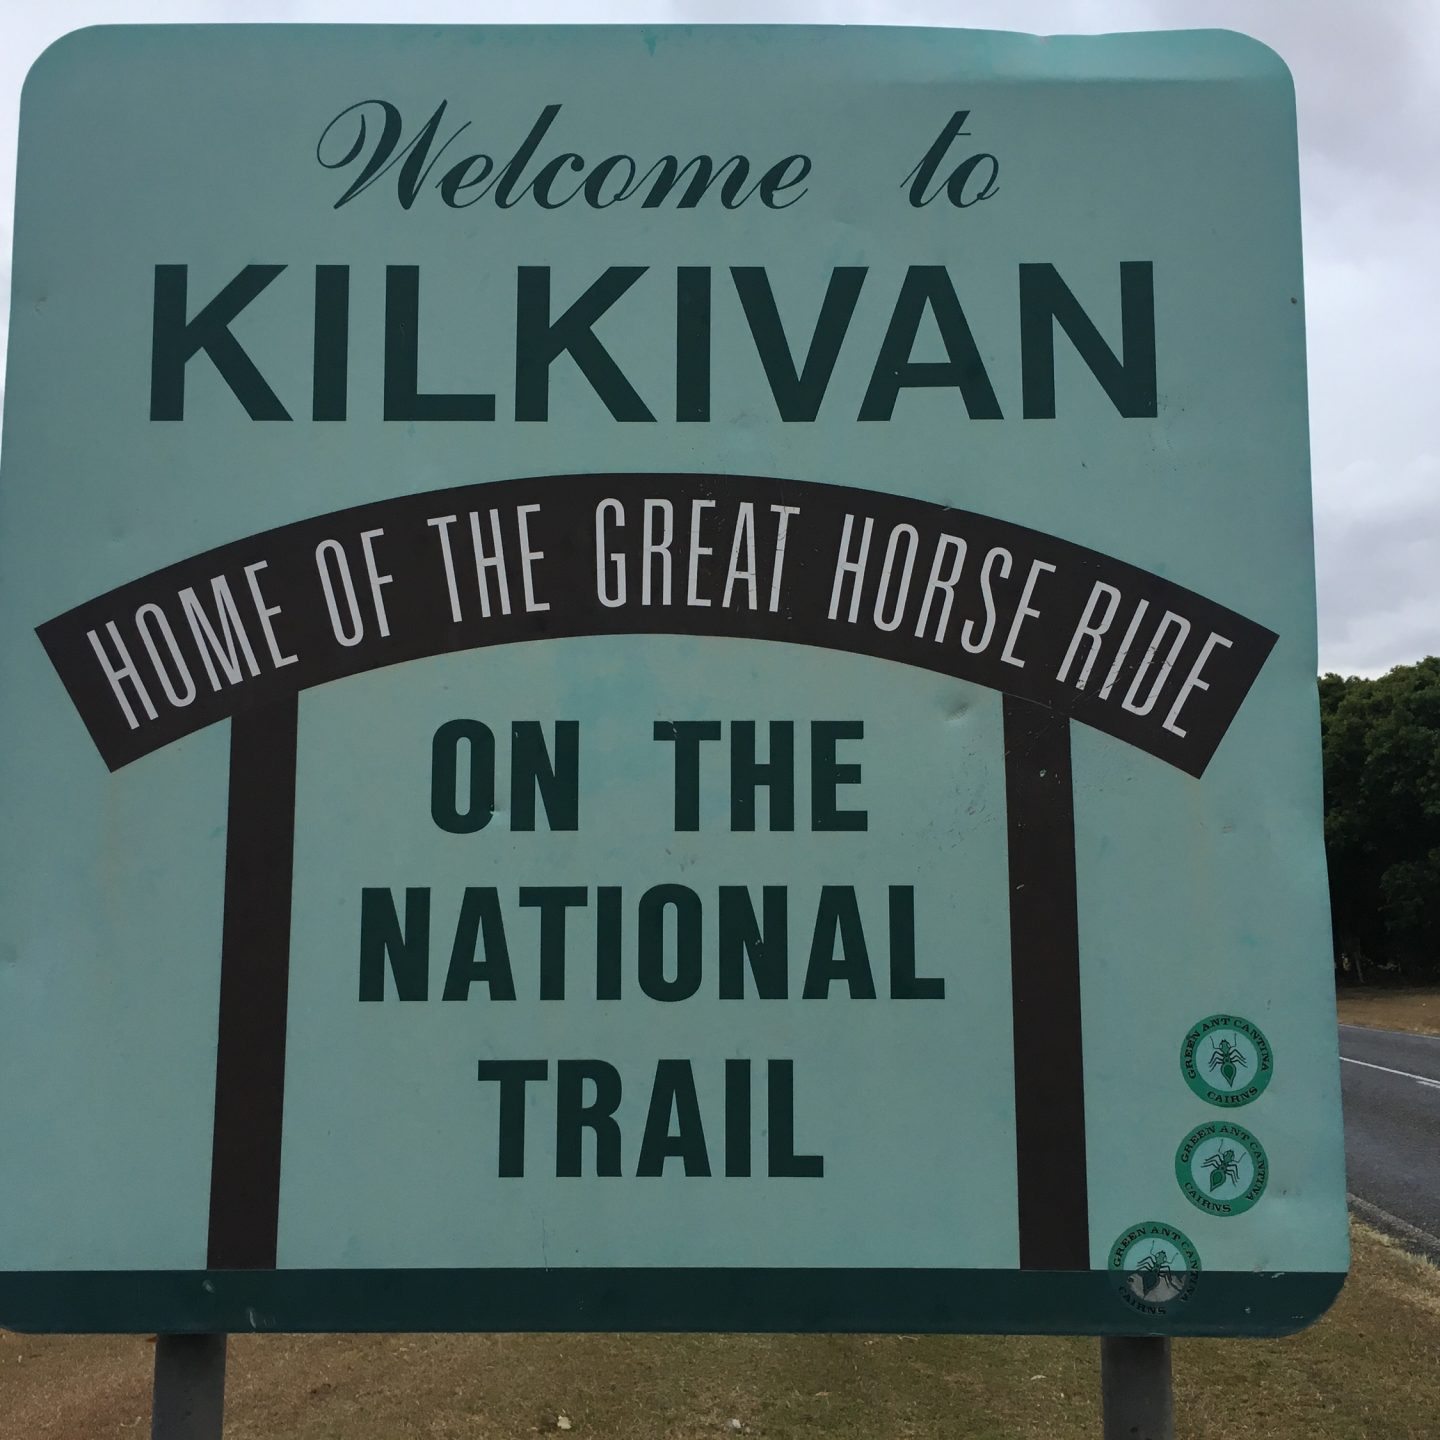 6Th OCTOBER The Bicentennial National Trail AGM at Kilkivan QLD